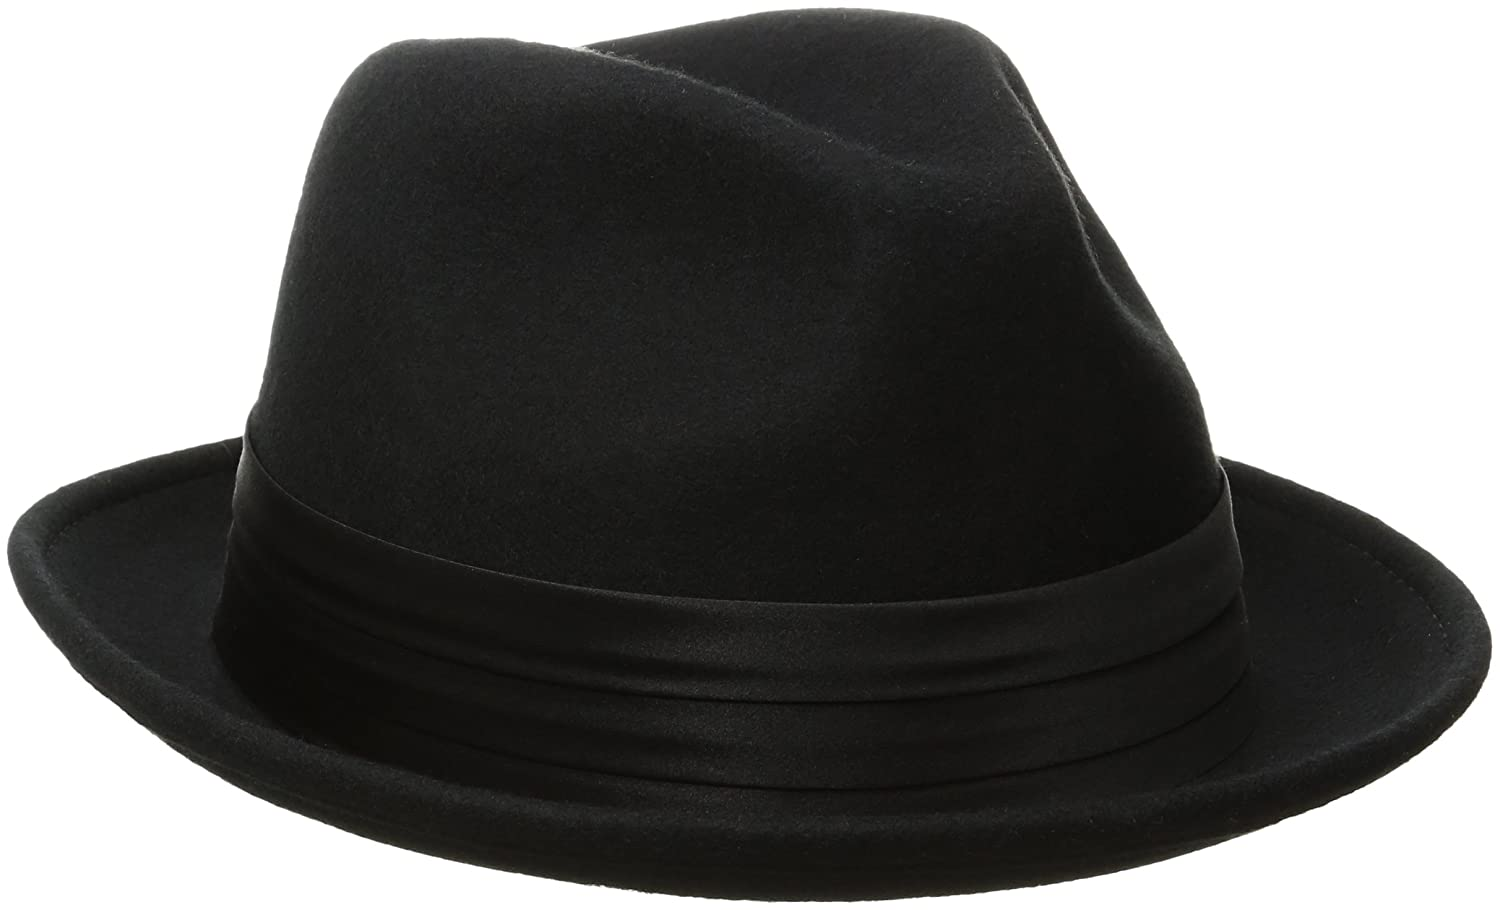 Stacy Adams Men s Crushable Wool Felt Snap Brim Fedora Hat at Amazon Men s  Clothing store  b5eb90a8a35c